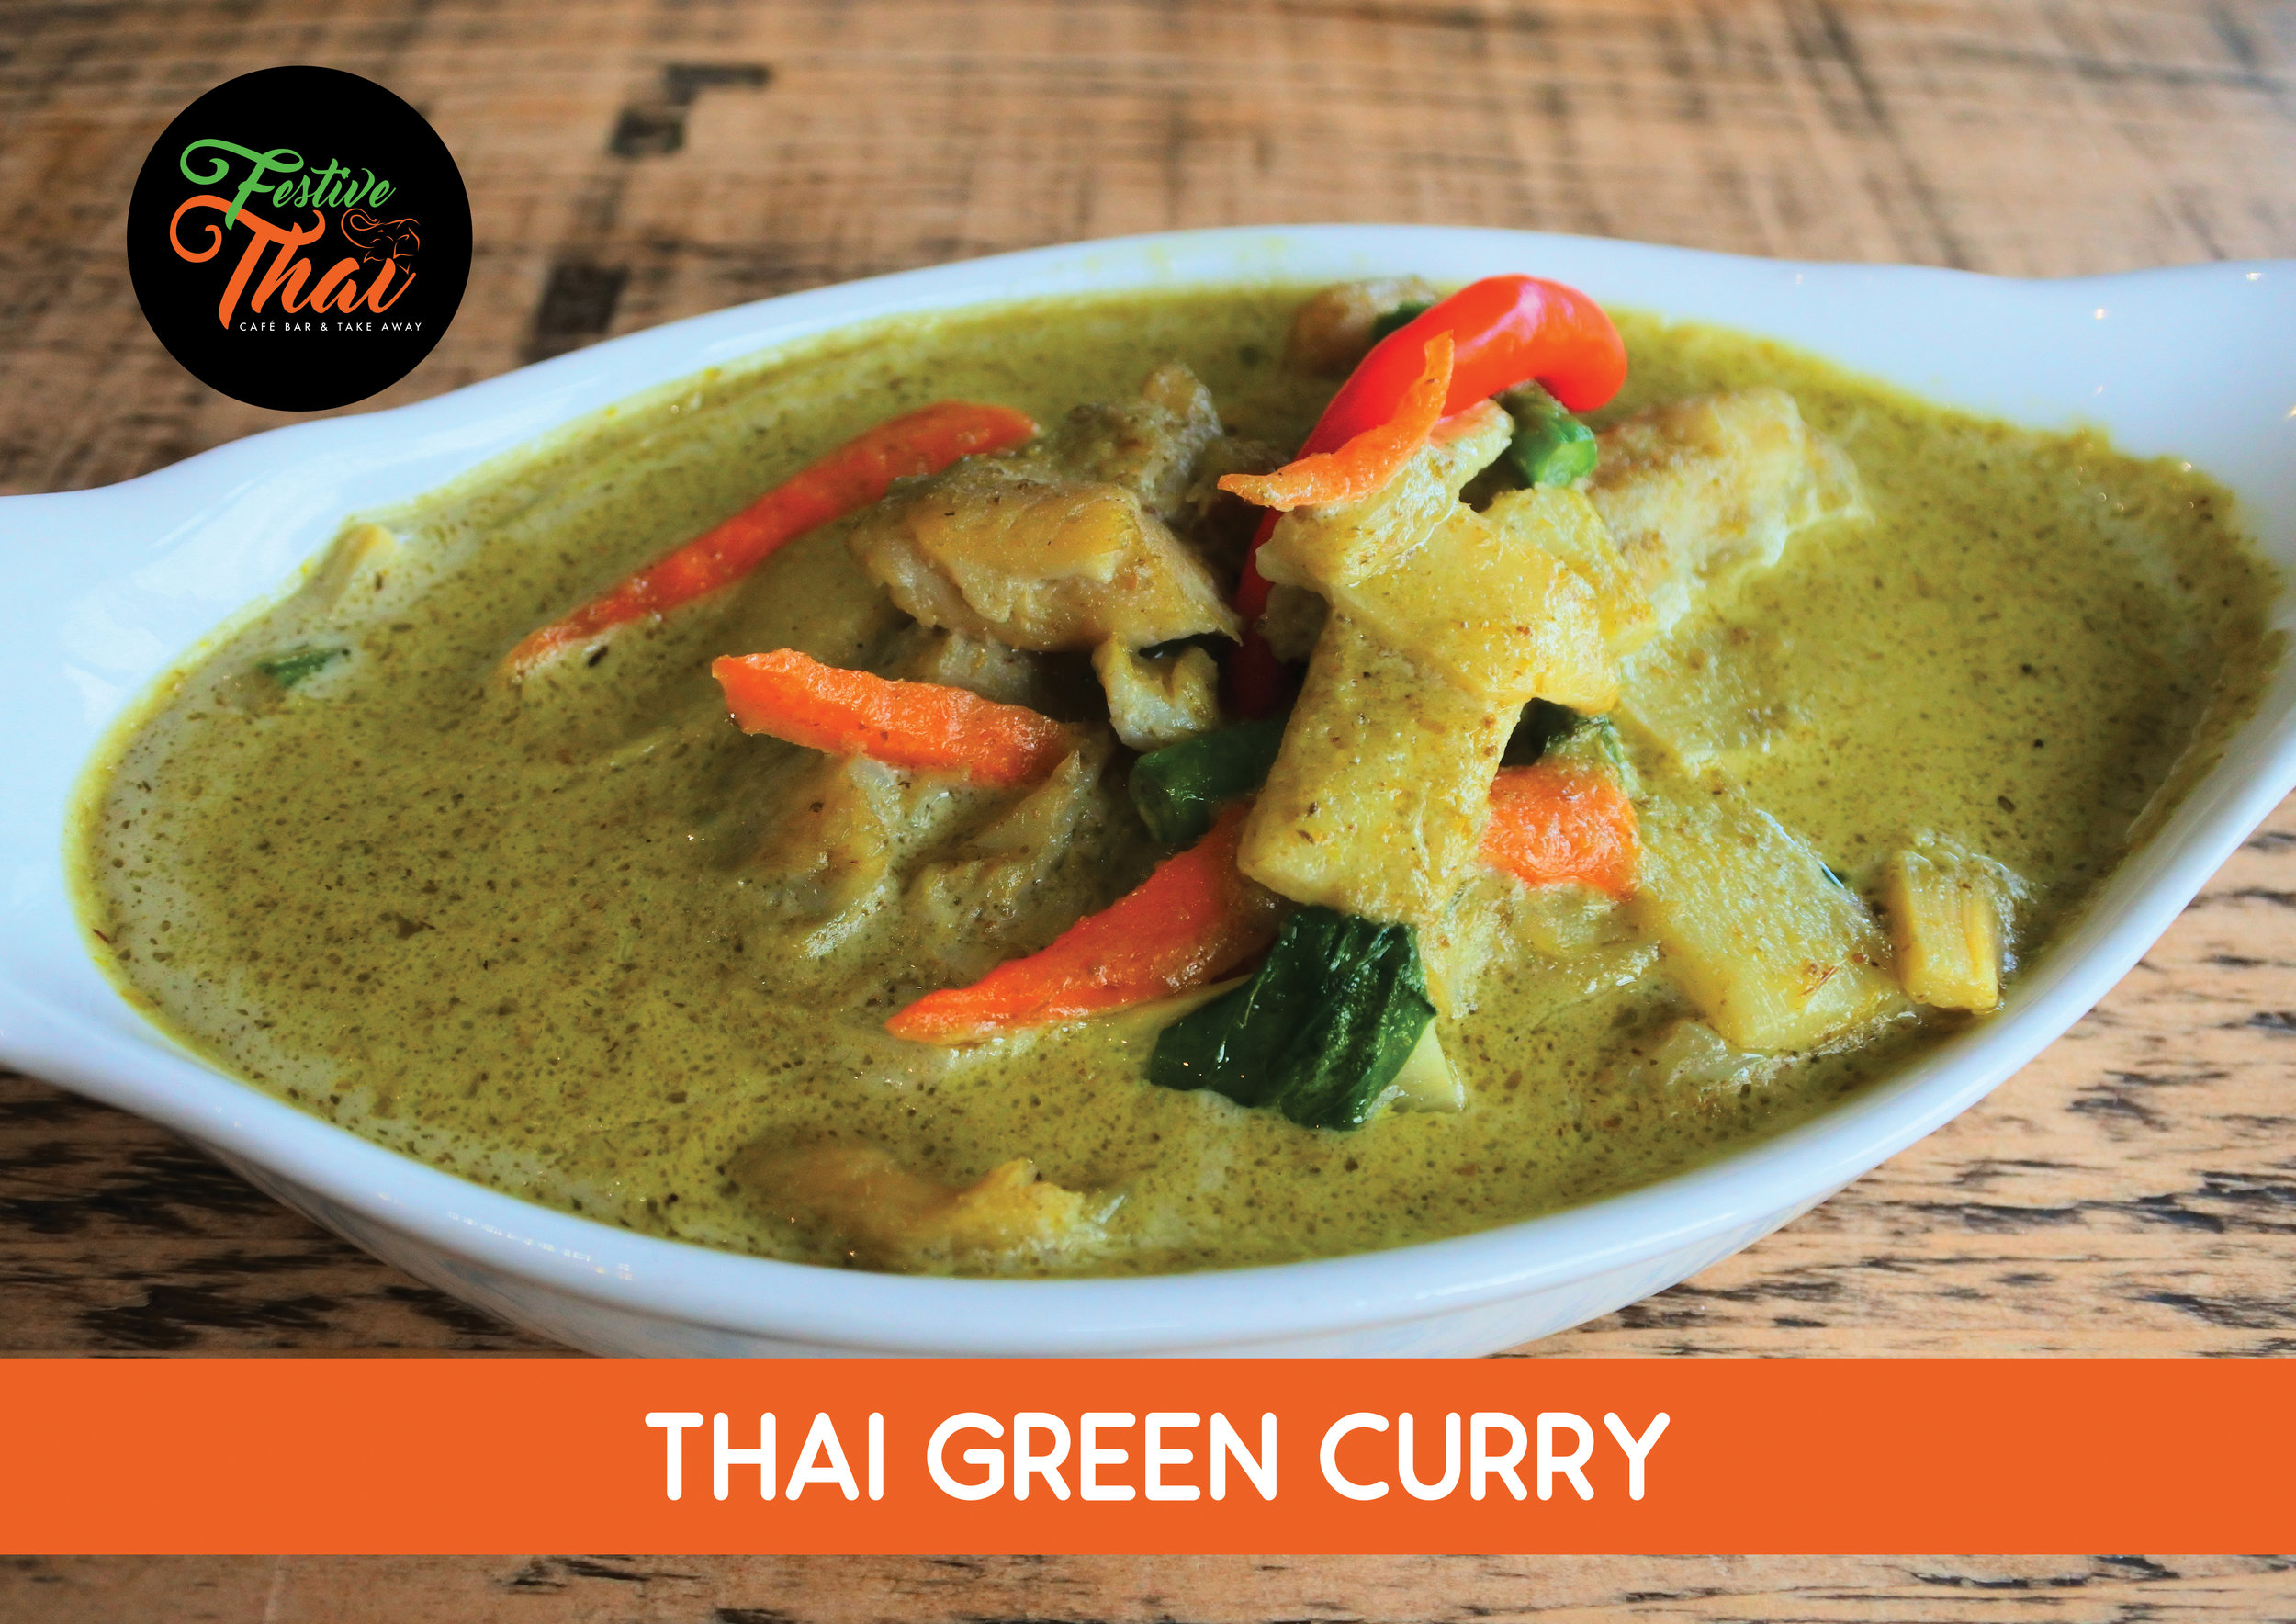 16_Thai Green Curry.jpg